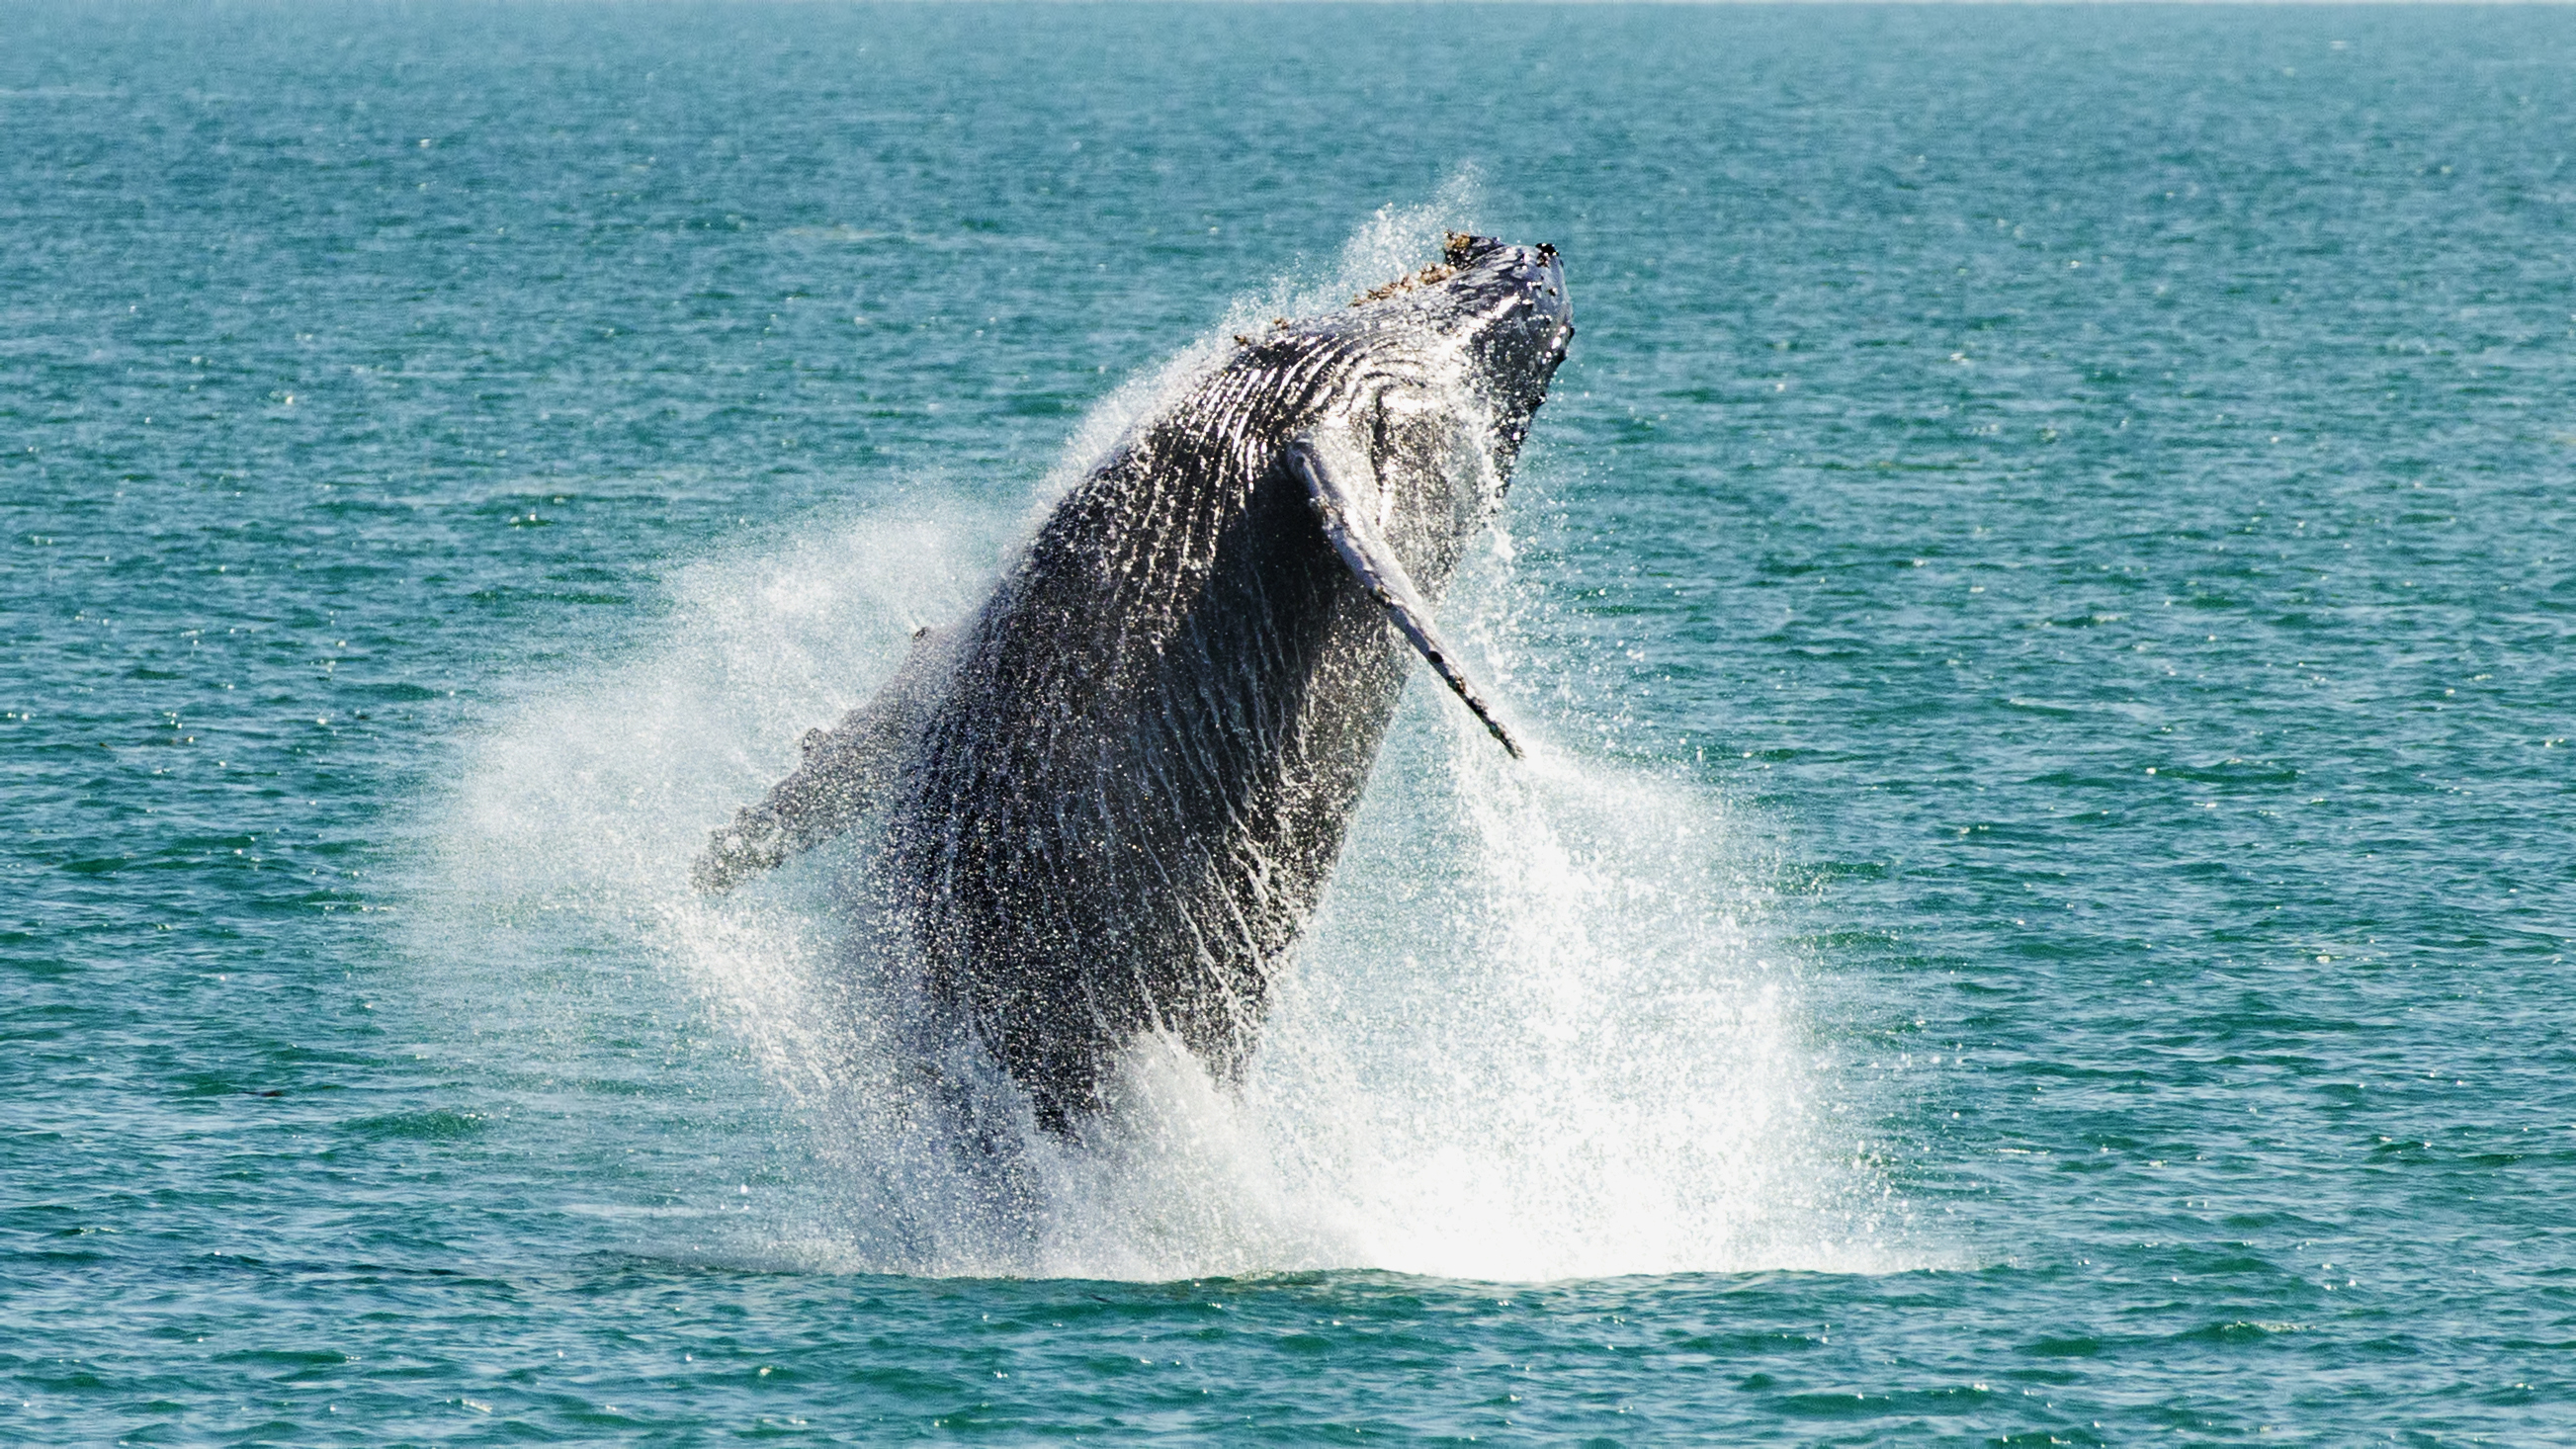 A humpback whale breaches from the water